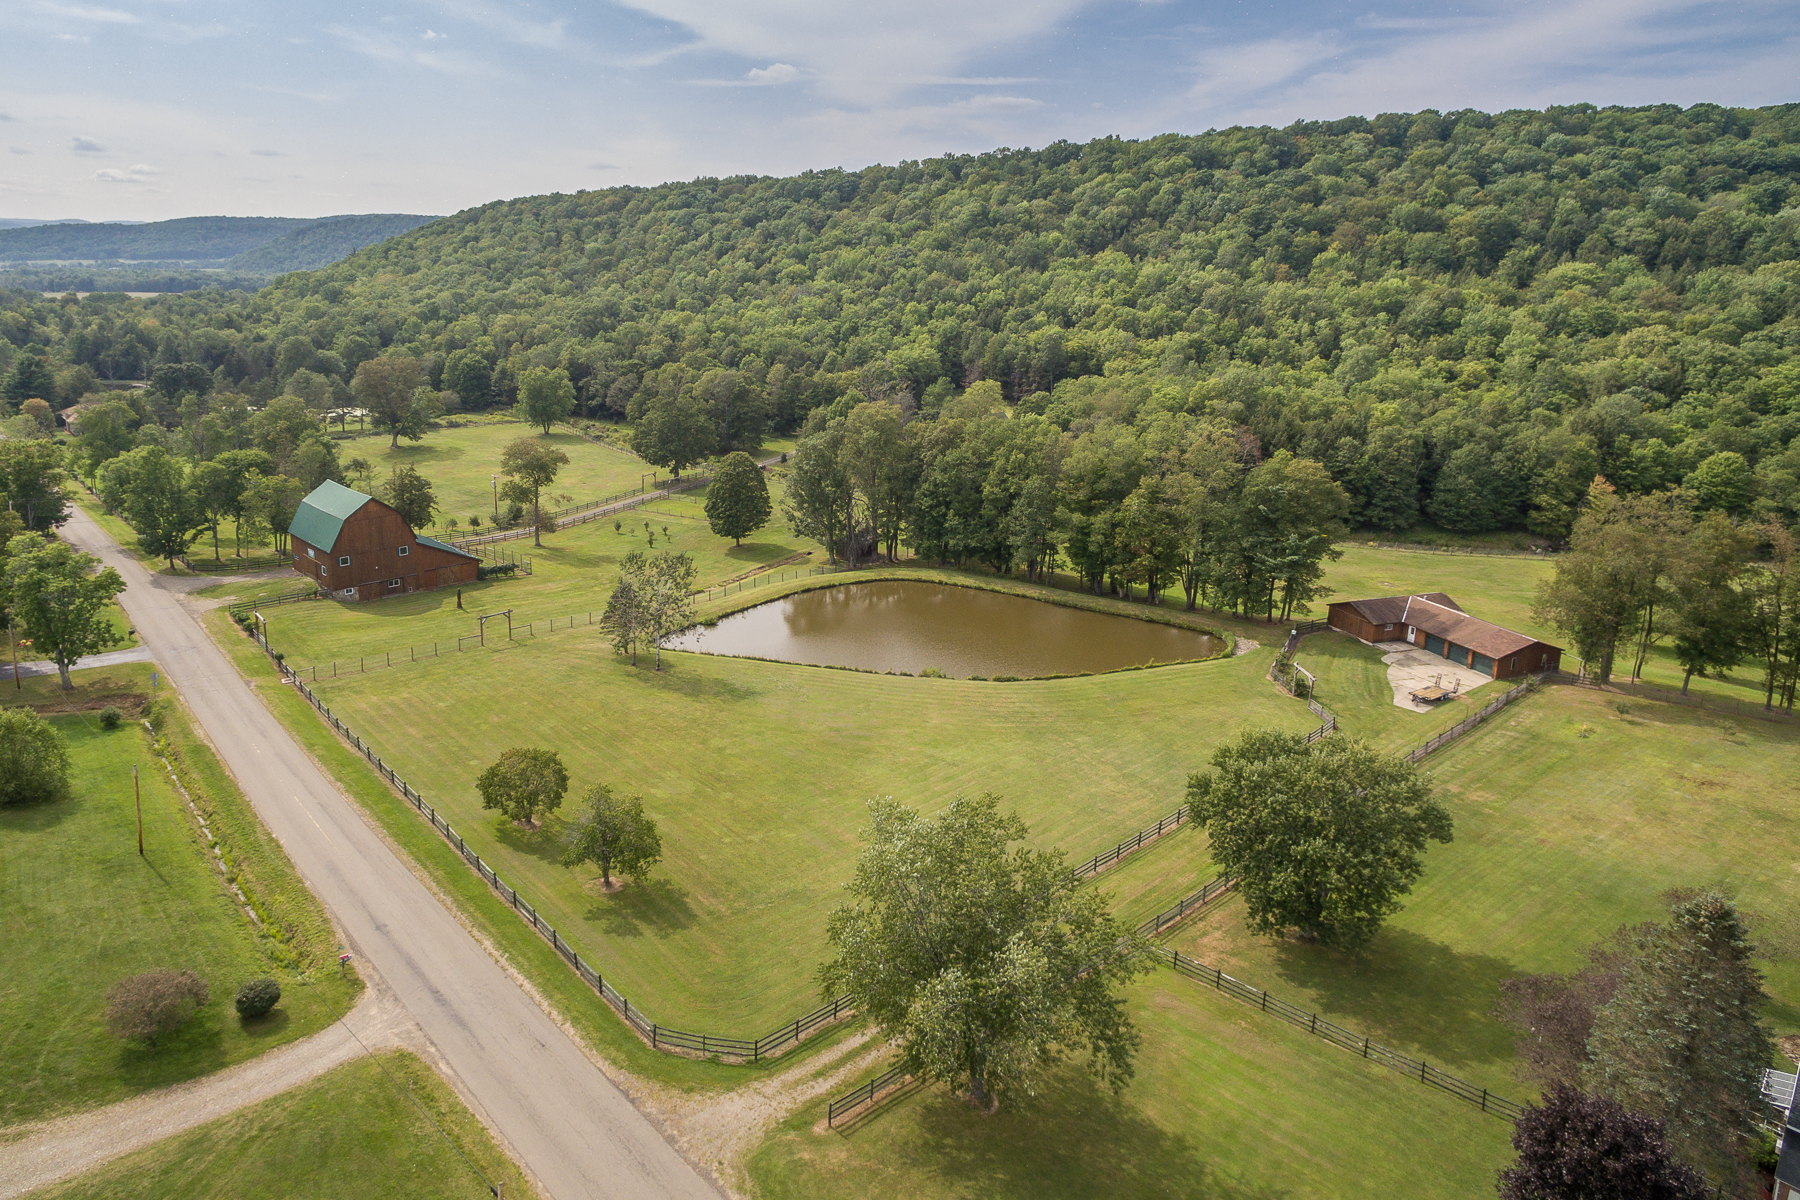 Ferme / Ranch / Plantation pour l Vente à Hemlock Brook Farm 458 Wolf Run Rd Portville, New York 14727 États-Unis